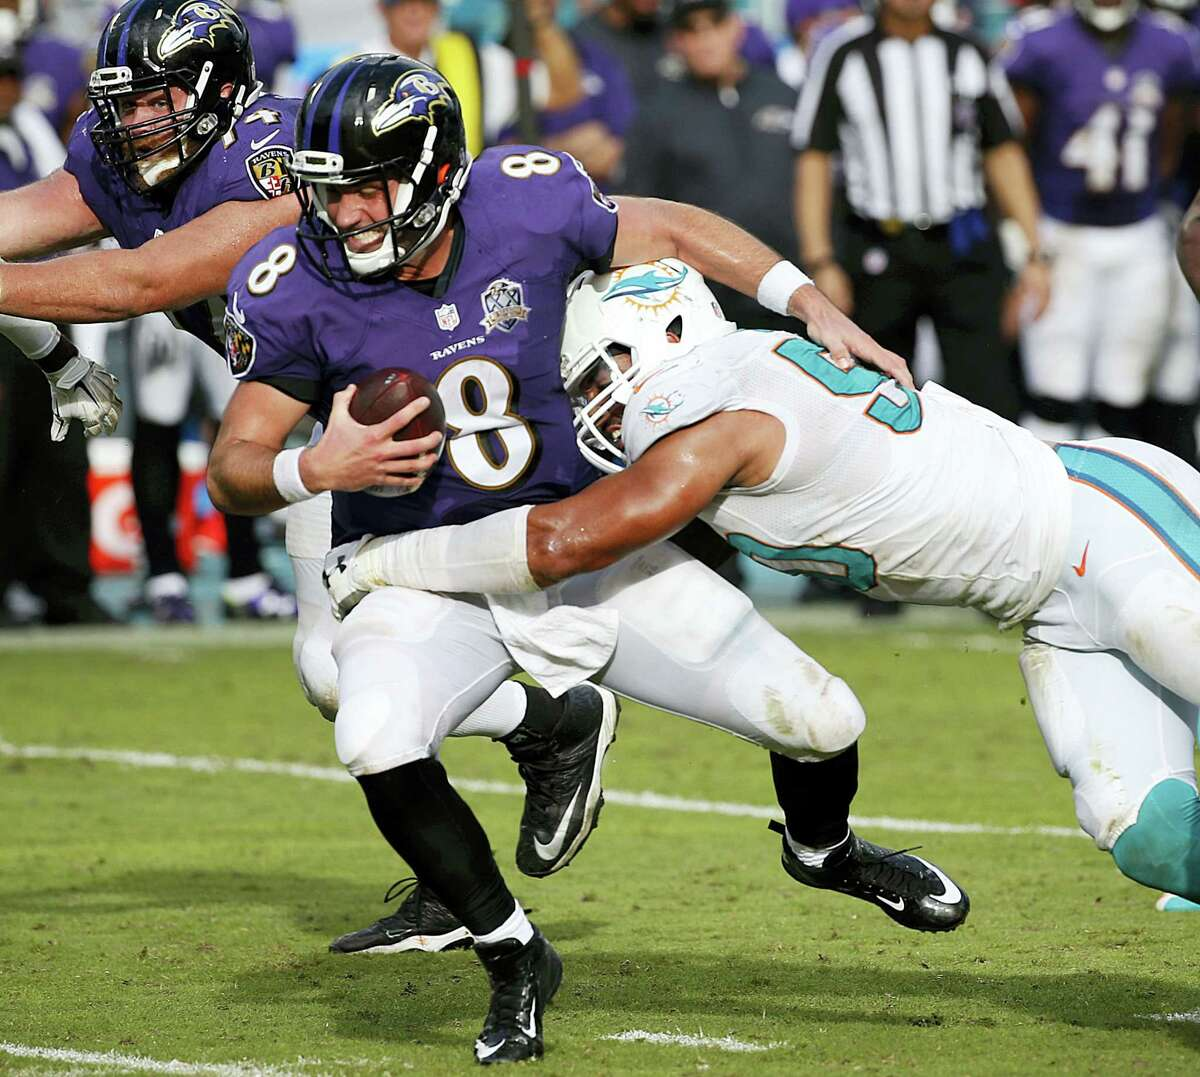 FILE - In this Dec. 6, 2015, file photo, Baltimore Ravens quarterback Matt Schaub (8) is sacked by Miami Dolphins defensive end Olivier Vernon (50), during the second half of an NFL football game, in Miami Gardens, Fla. Vernon agreed to terms on what is believed to be a five-year, $85 million contract with the Giants Wednesday, March 9, 2016. (AP Photo/Wilfredo Lee, File)